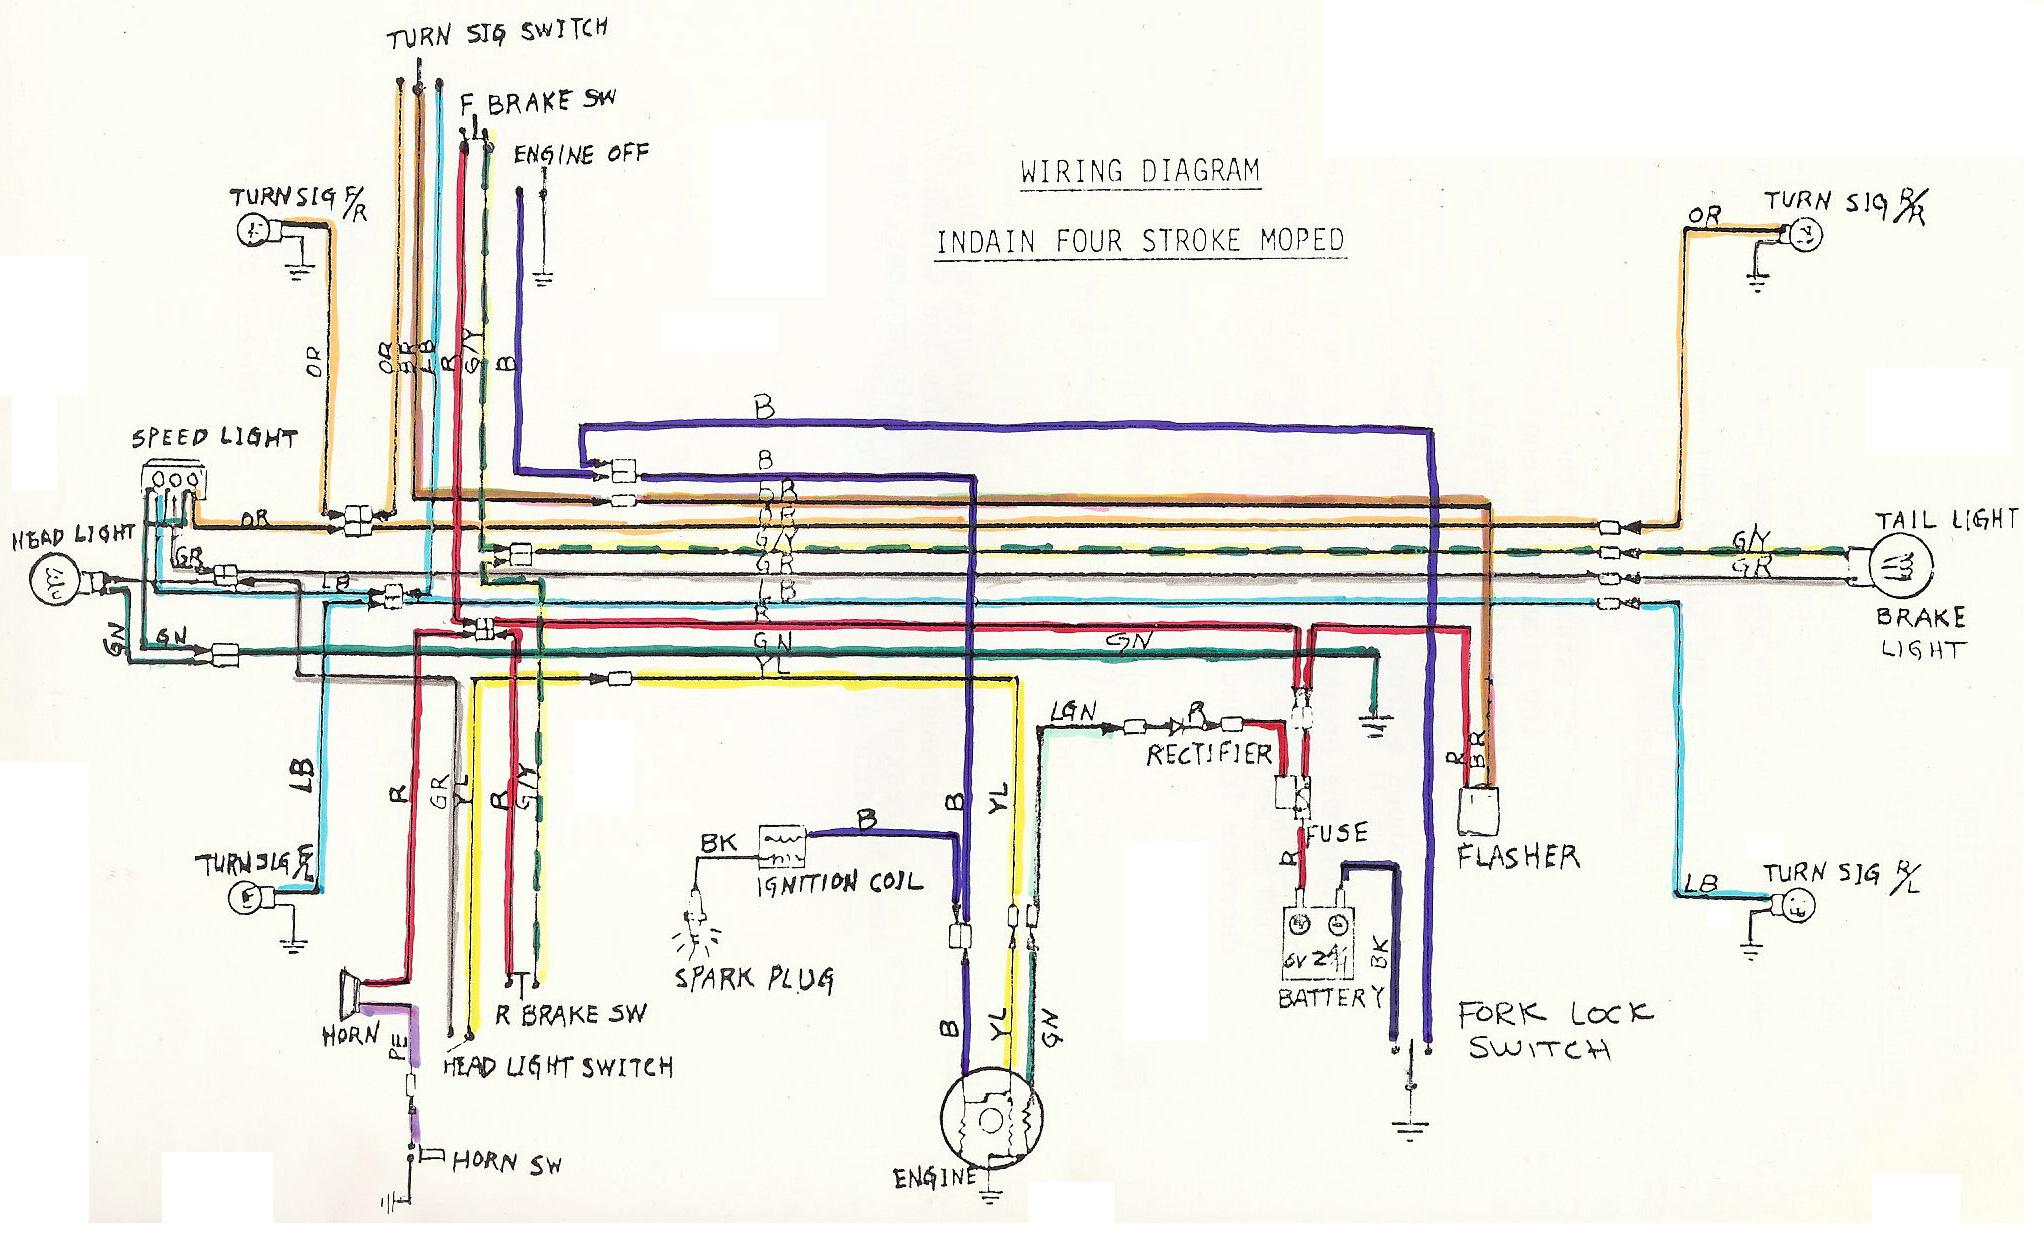 generator wiring diagram images wiring diagram n motorcycle wiring diagrams n moped wiring